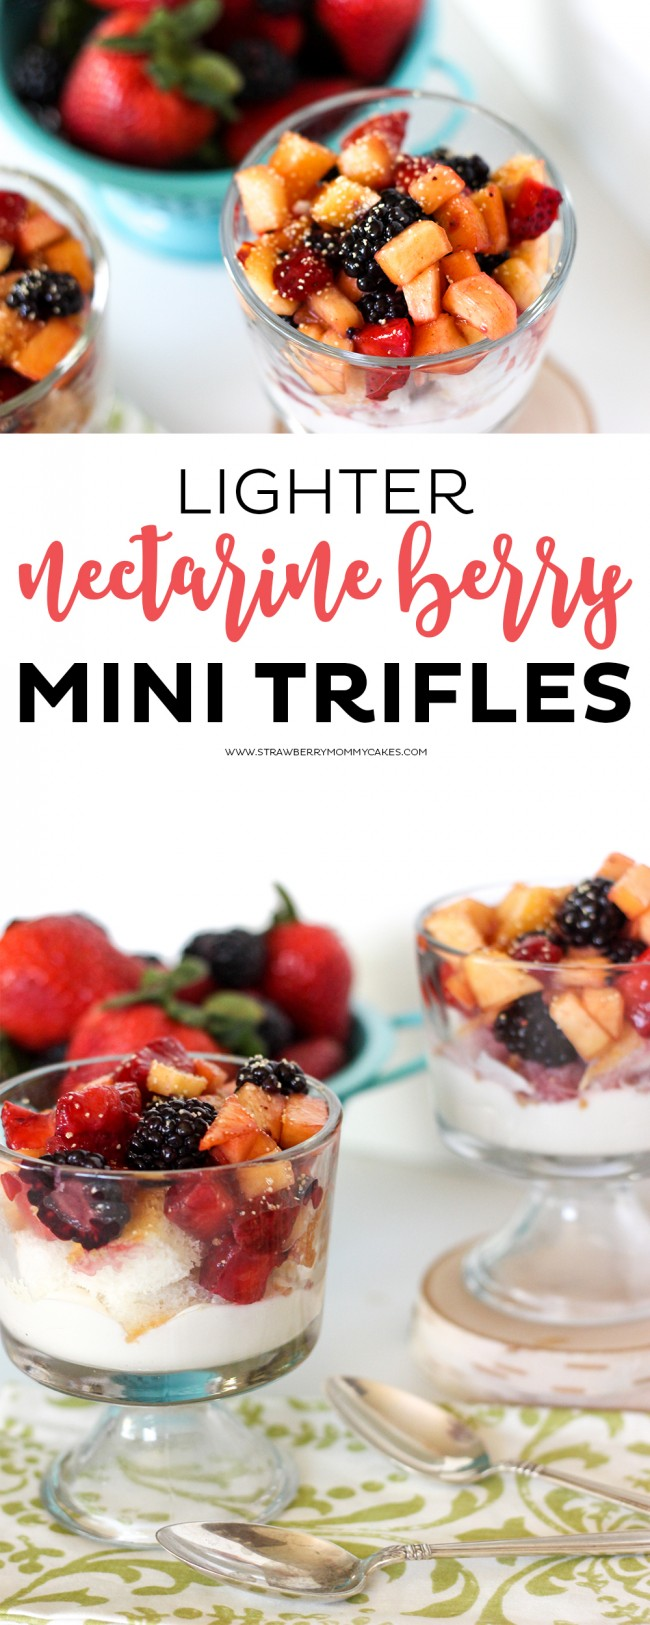 These Nectarine Berry Mini Trifles are AMAZING! Just a couple tweaks to the recipe make it lighter than most trifle desserts!